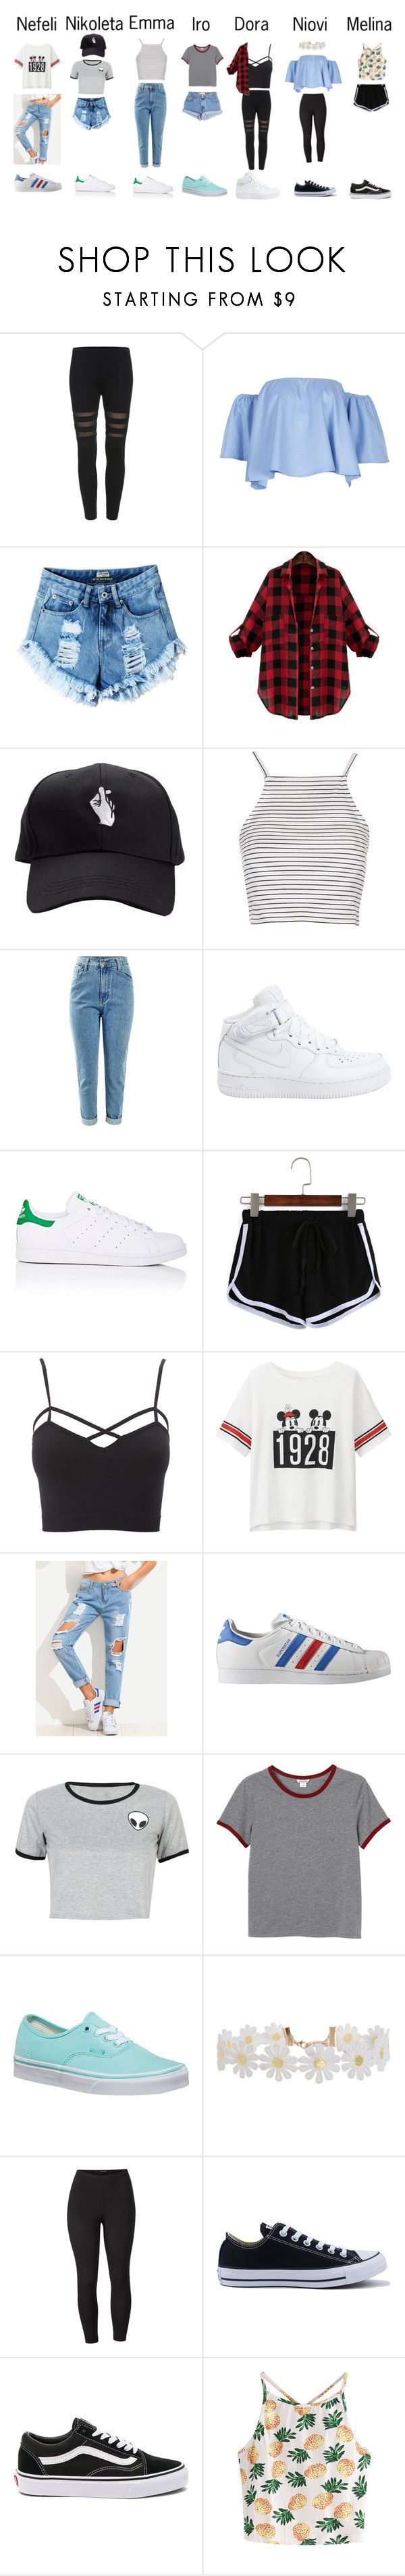 """""""Untitled #41"""" by lemonitadr on Polyvore featuring Topshop, Levi's, NIKE, adidas, Charlotte Russe, Uniqlo, adidas Originals, WithChic, Monki and Vans"""